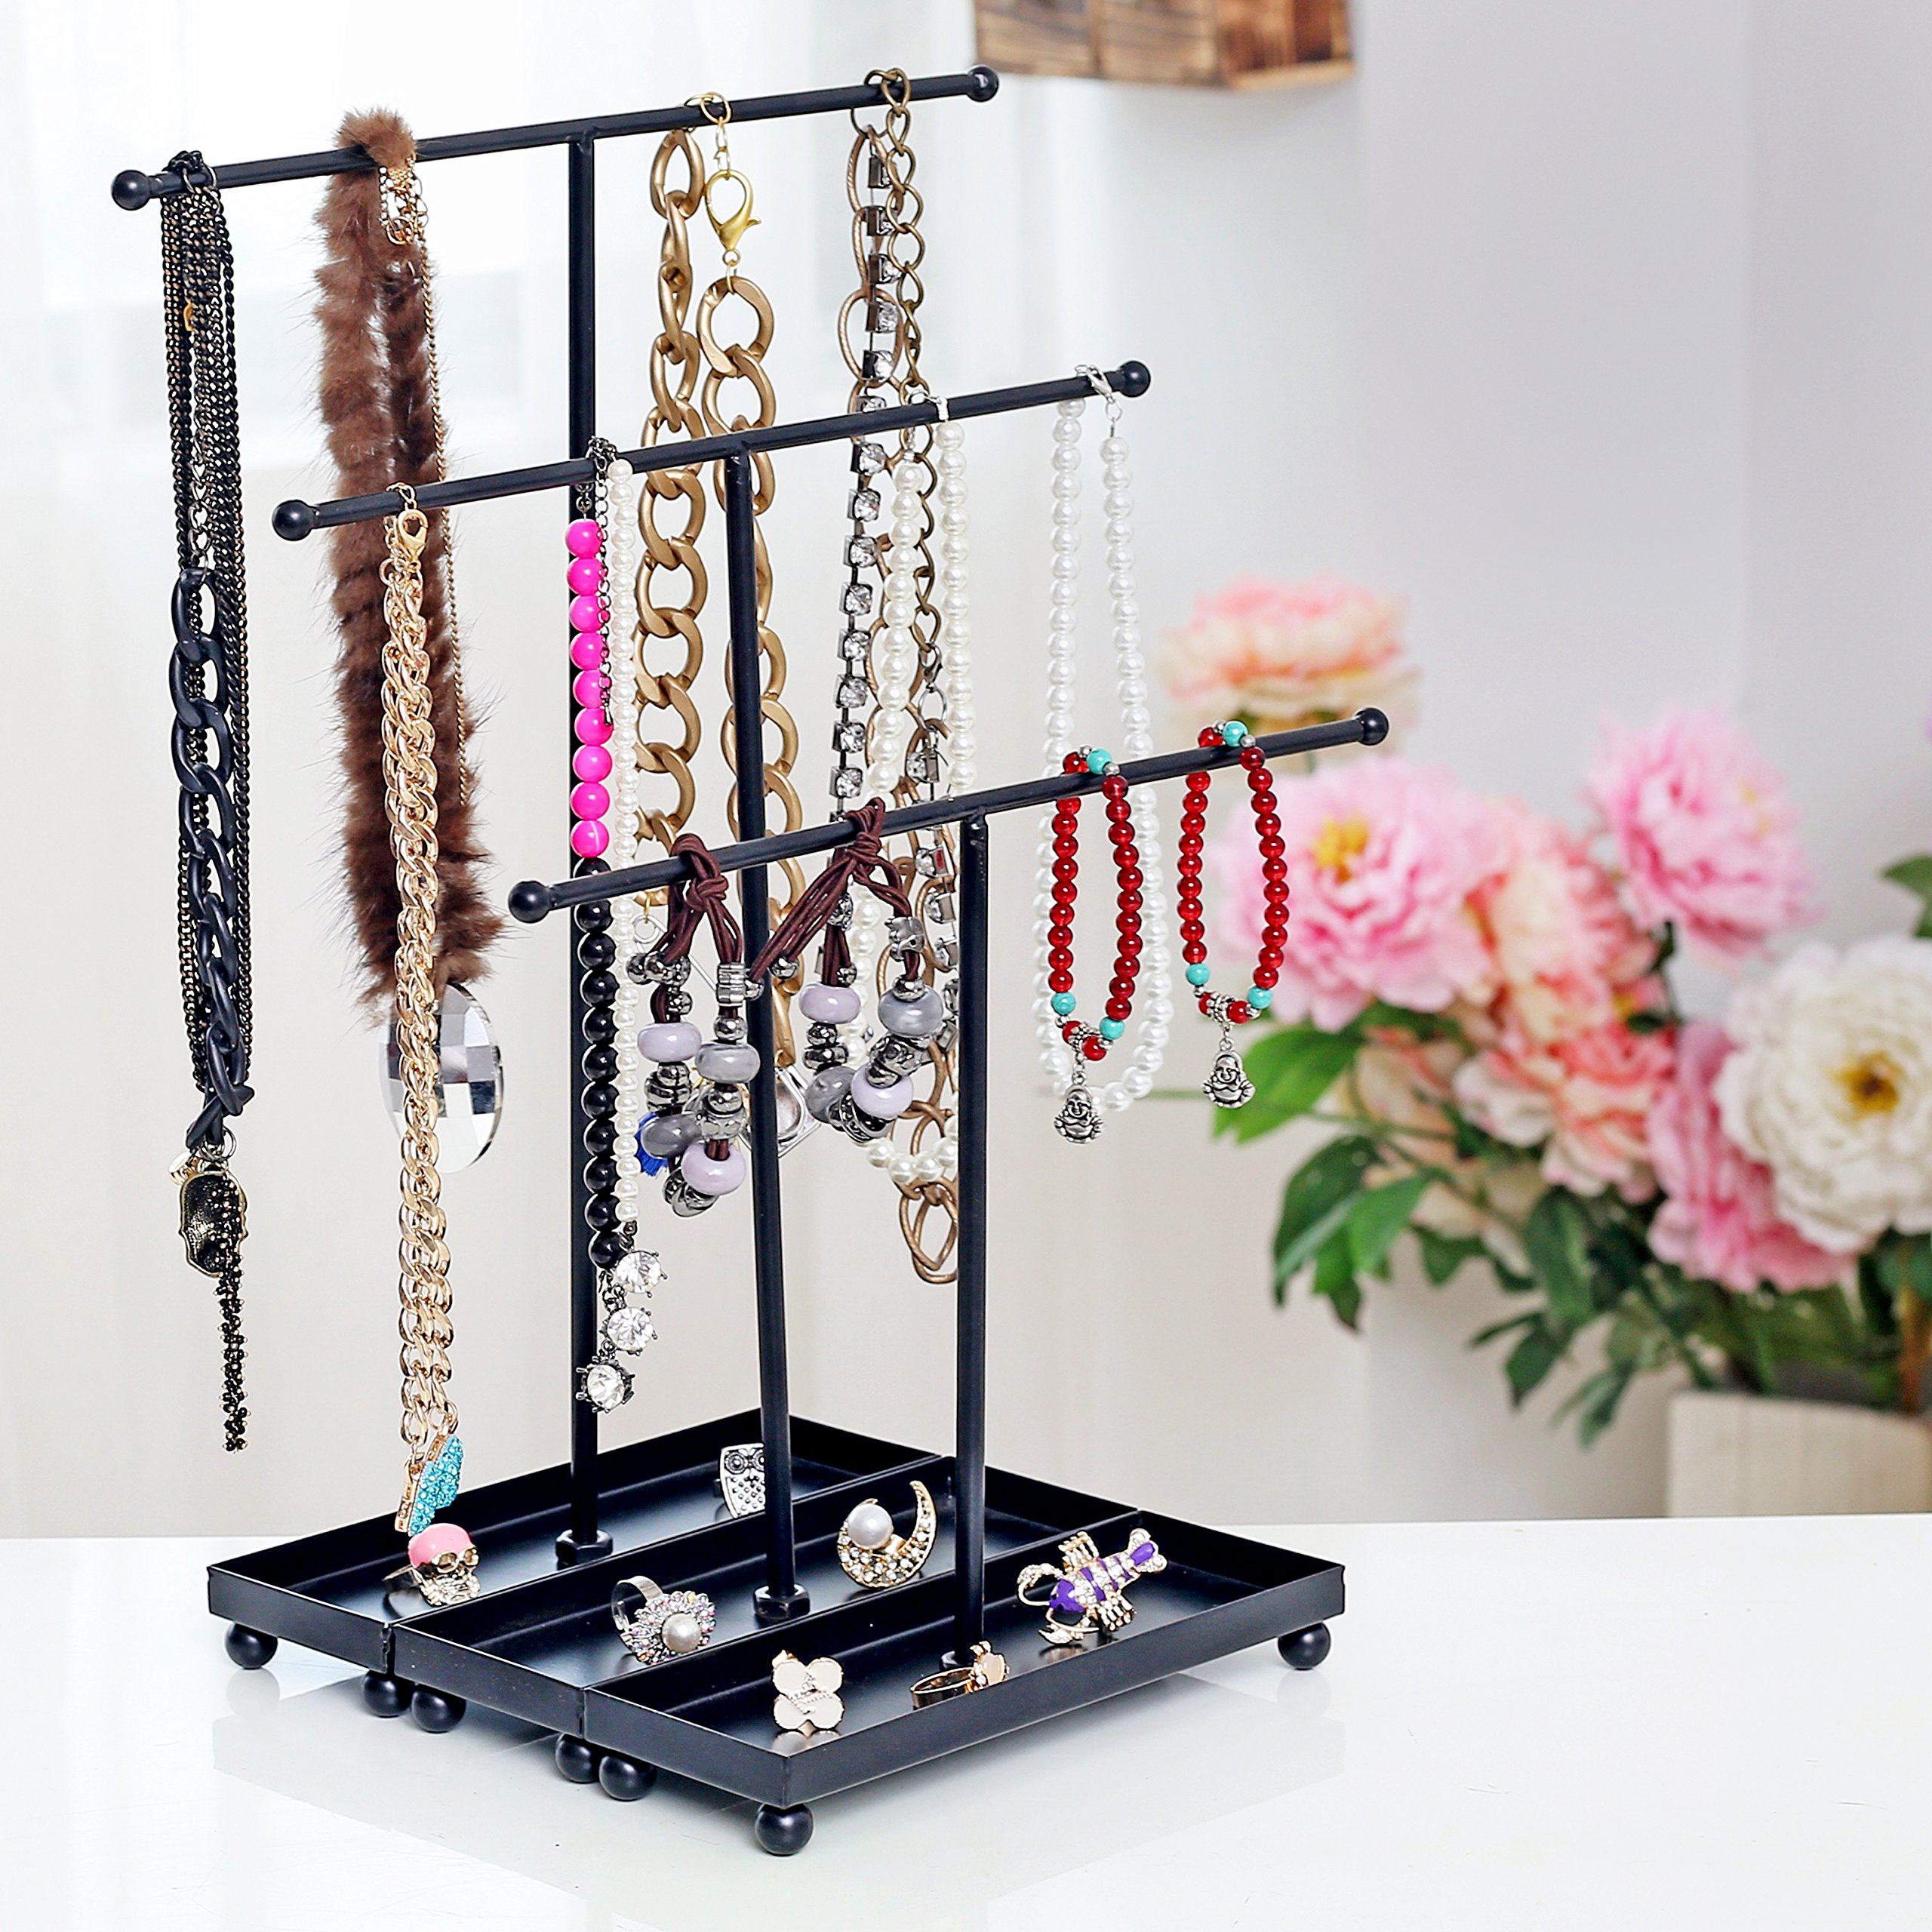 Set of 3 Modern Jewelry Organizers, Tabletop Bracelet & Necklace Hangers w/ Ring Dish, Black by MyGift (Image #3)